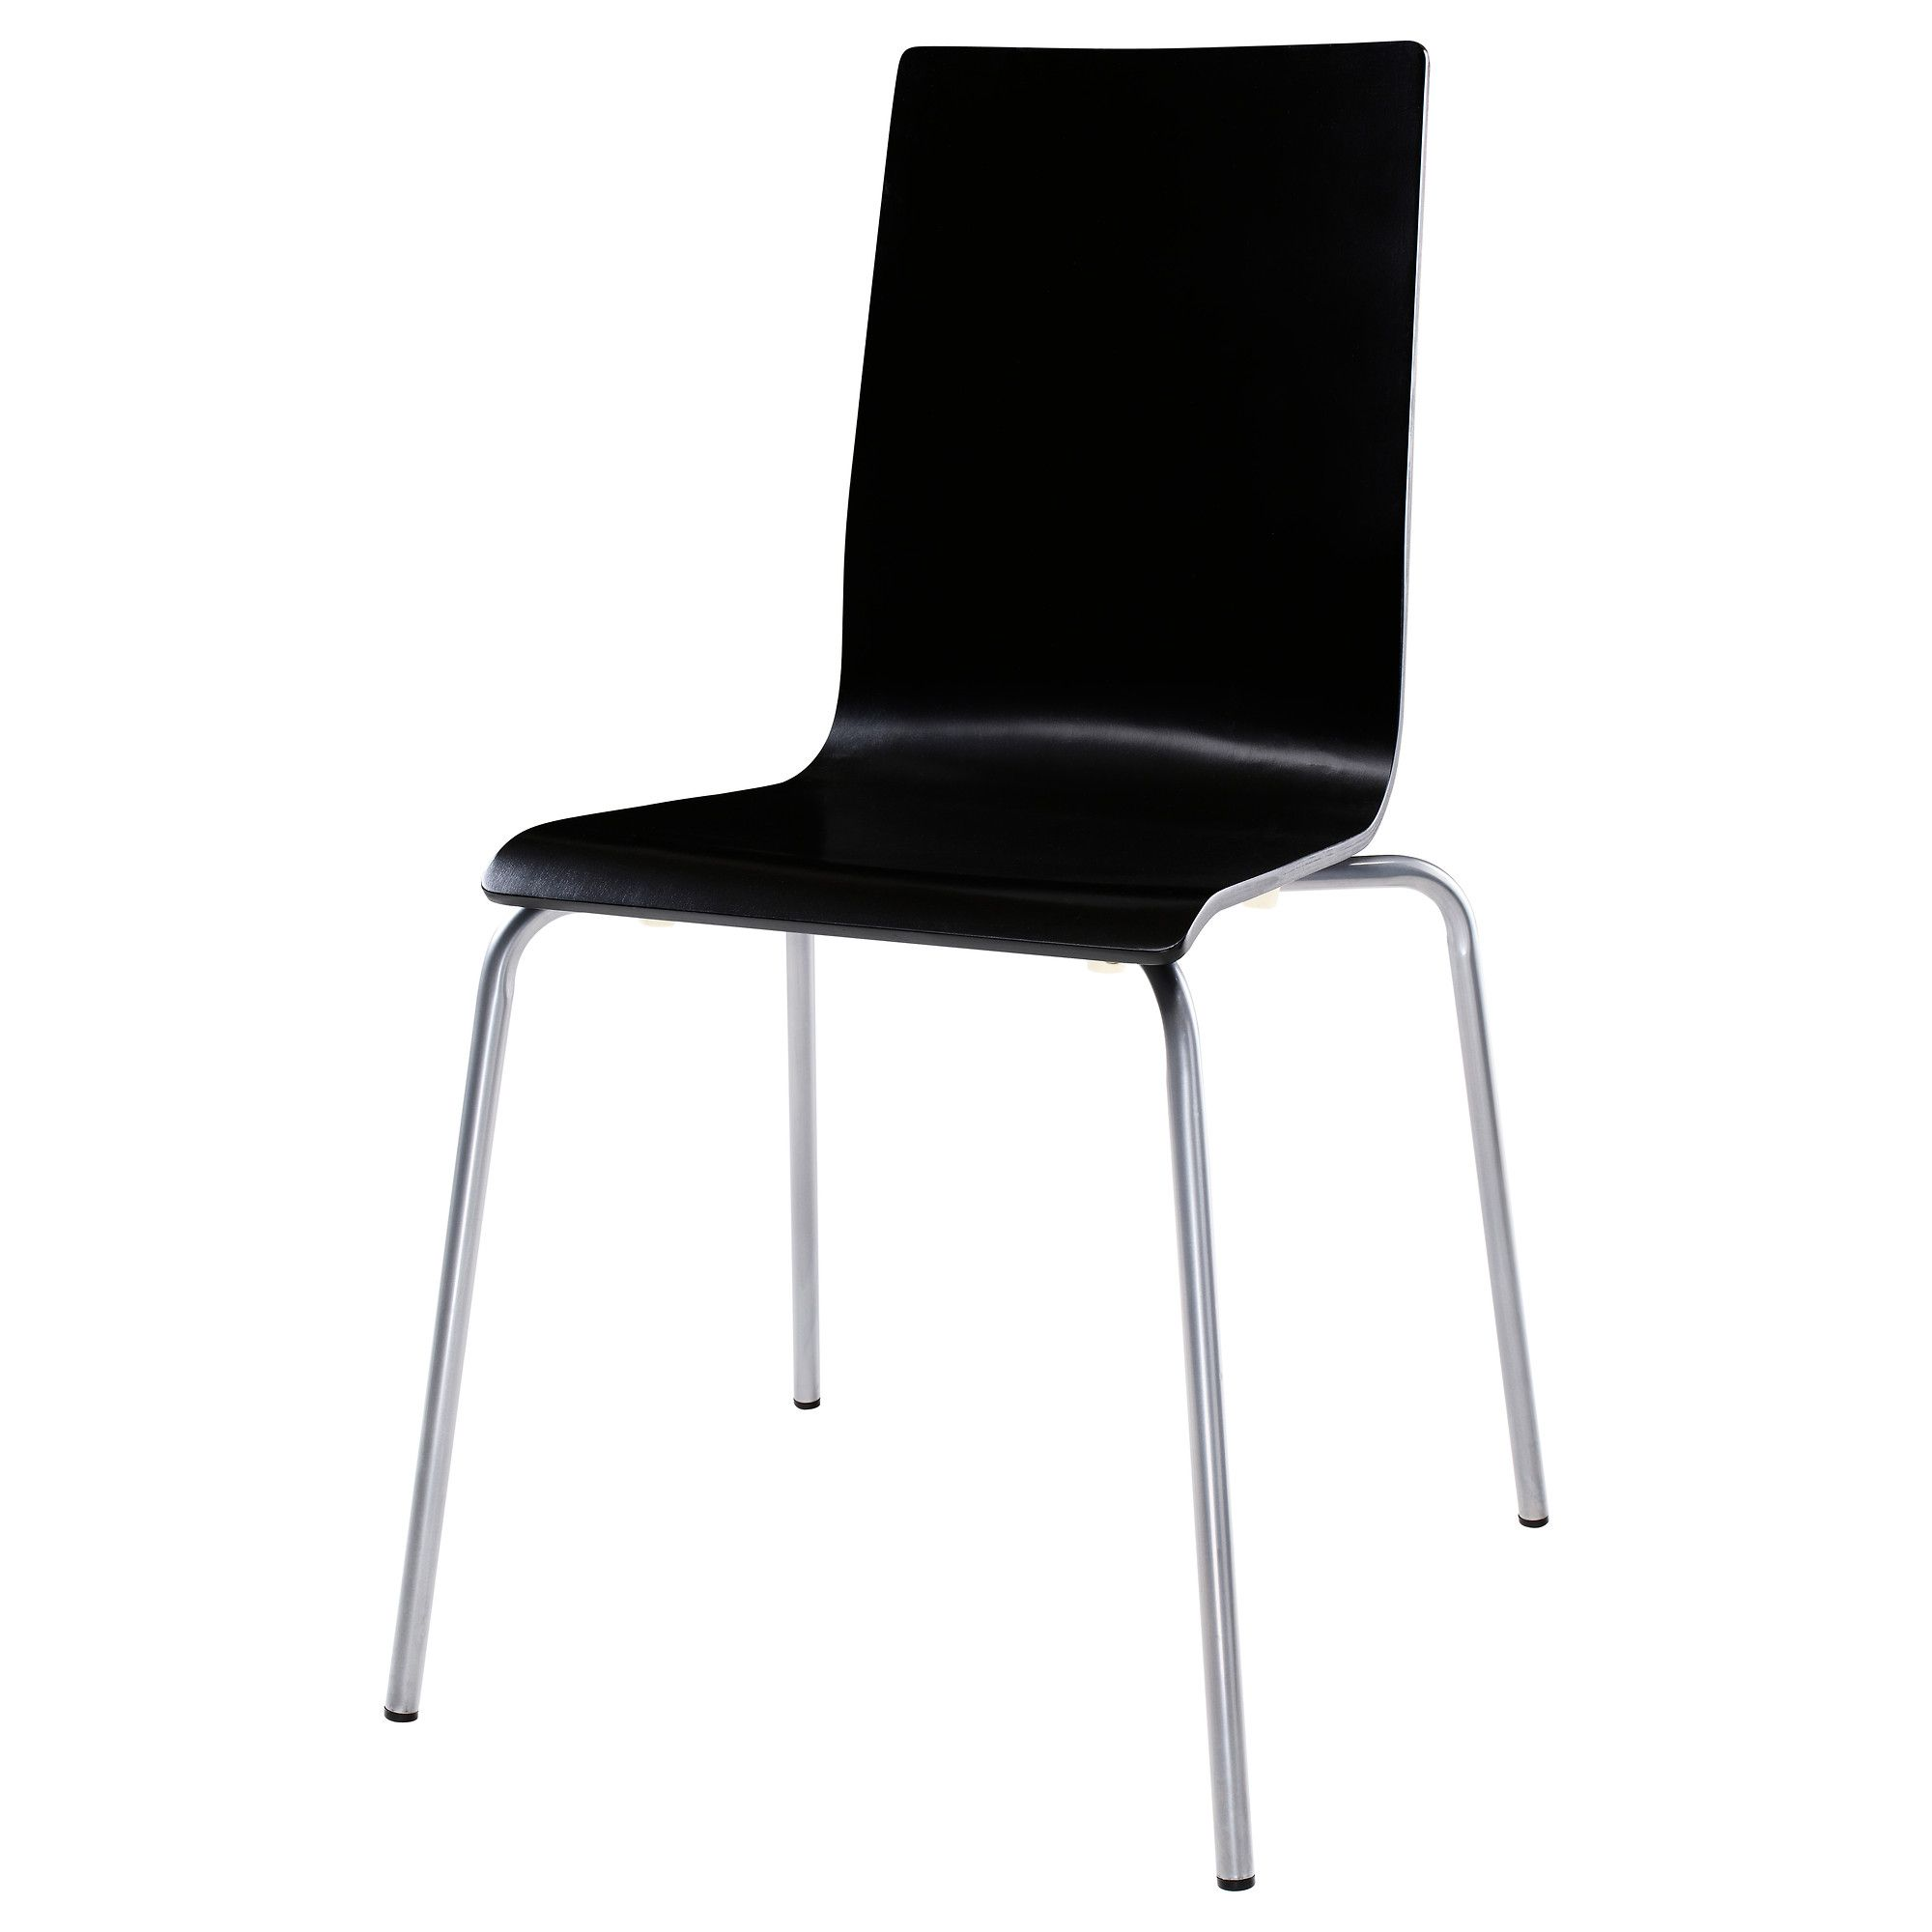 MARTIN Chair silver color black $24 99 chairs Pinterest